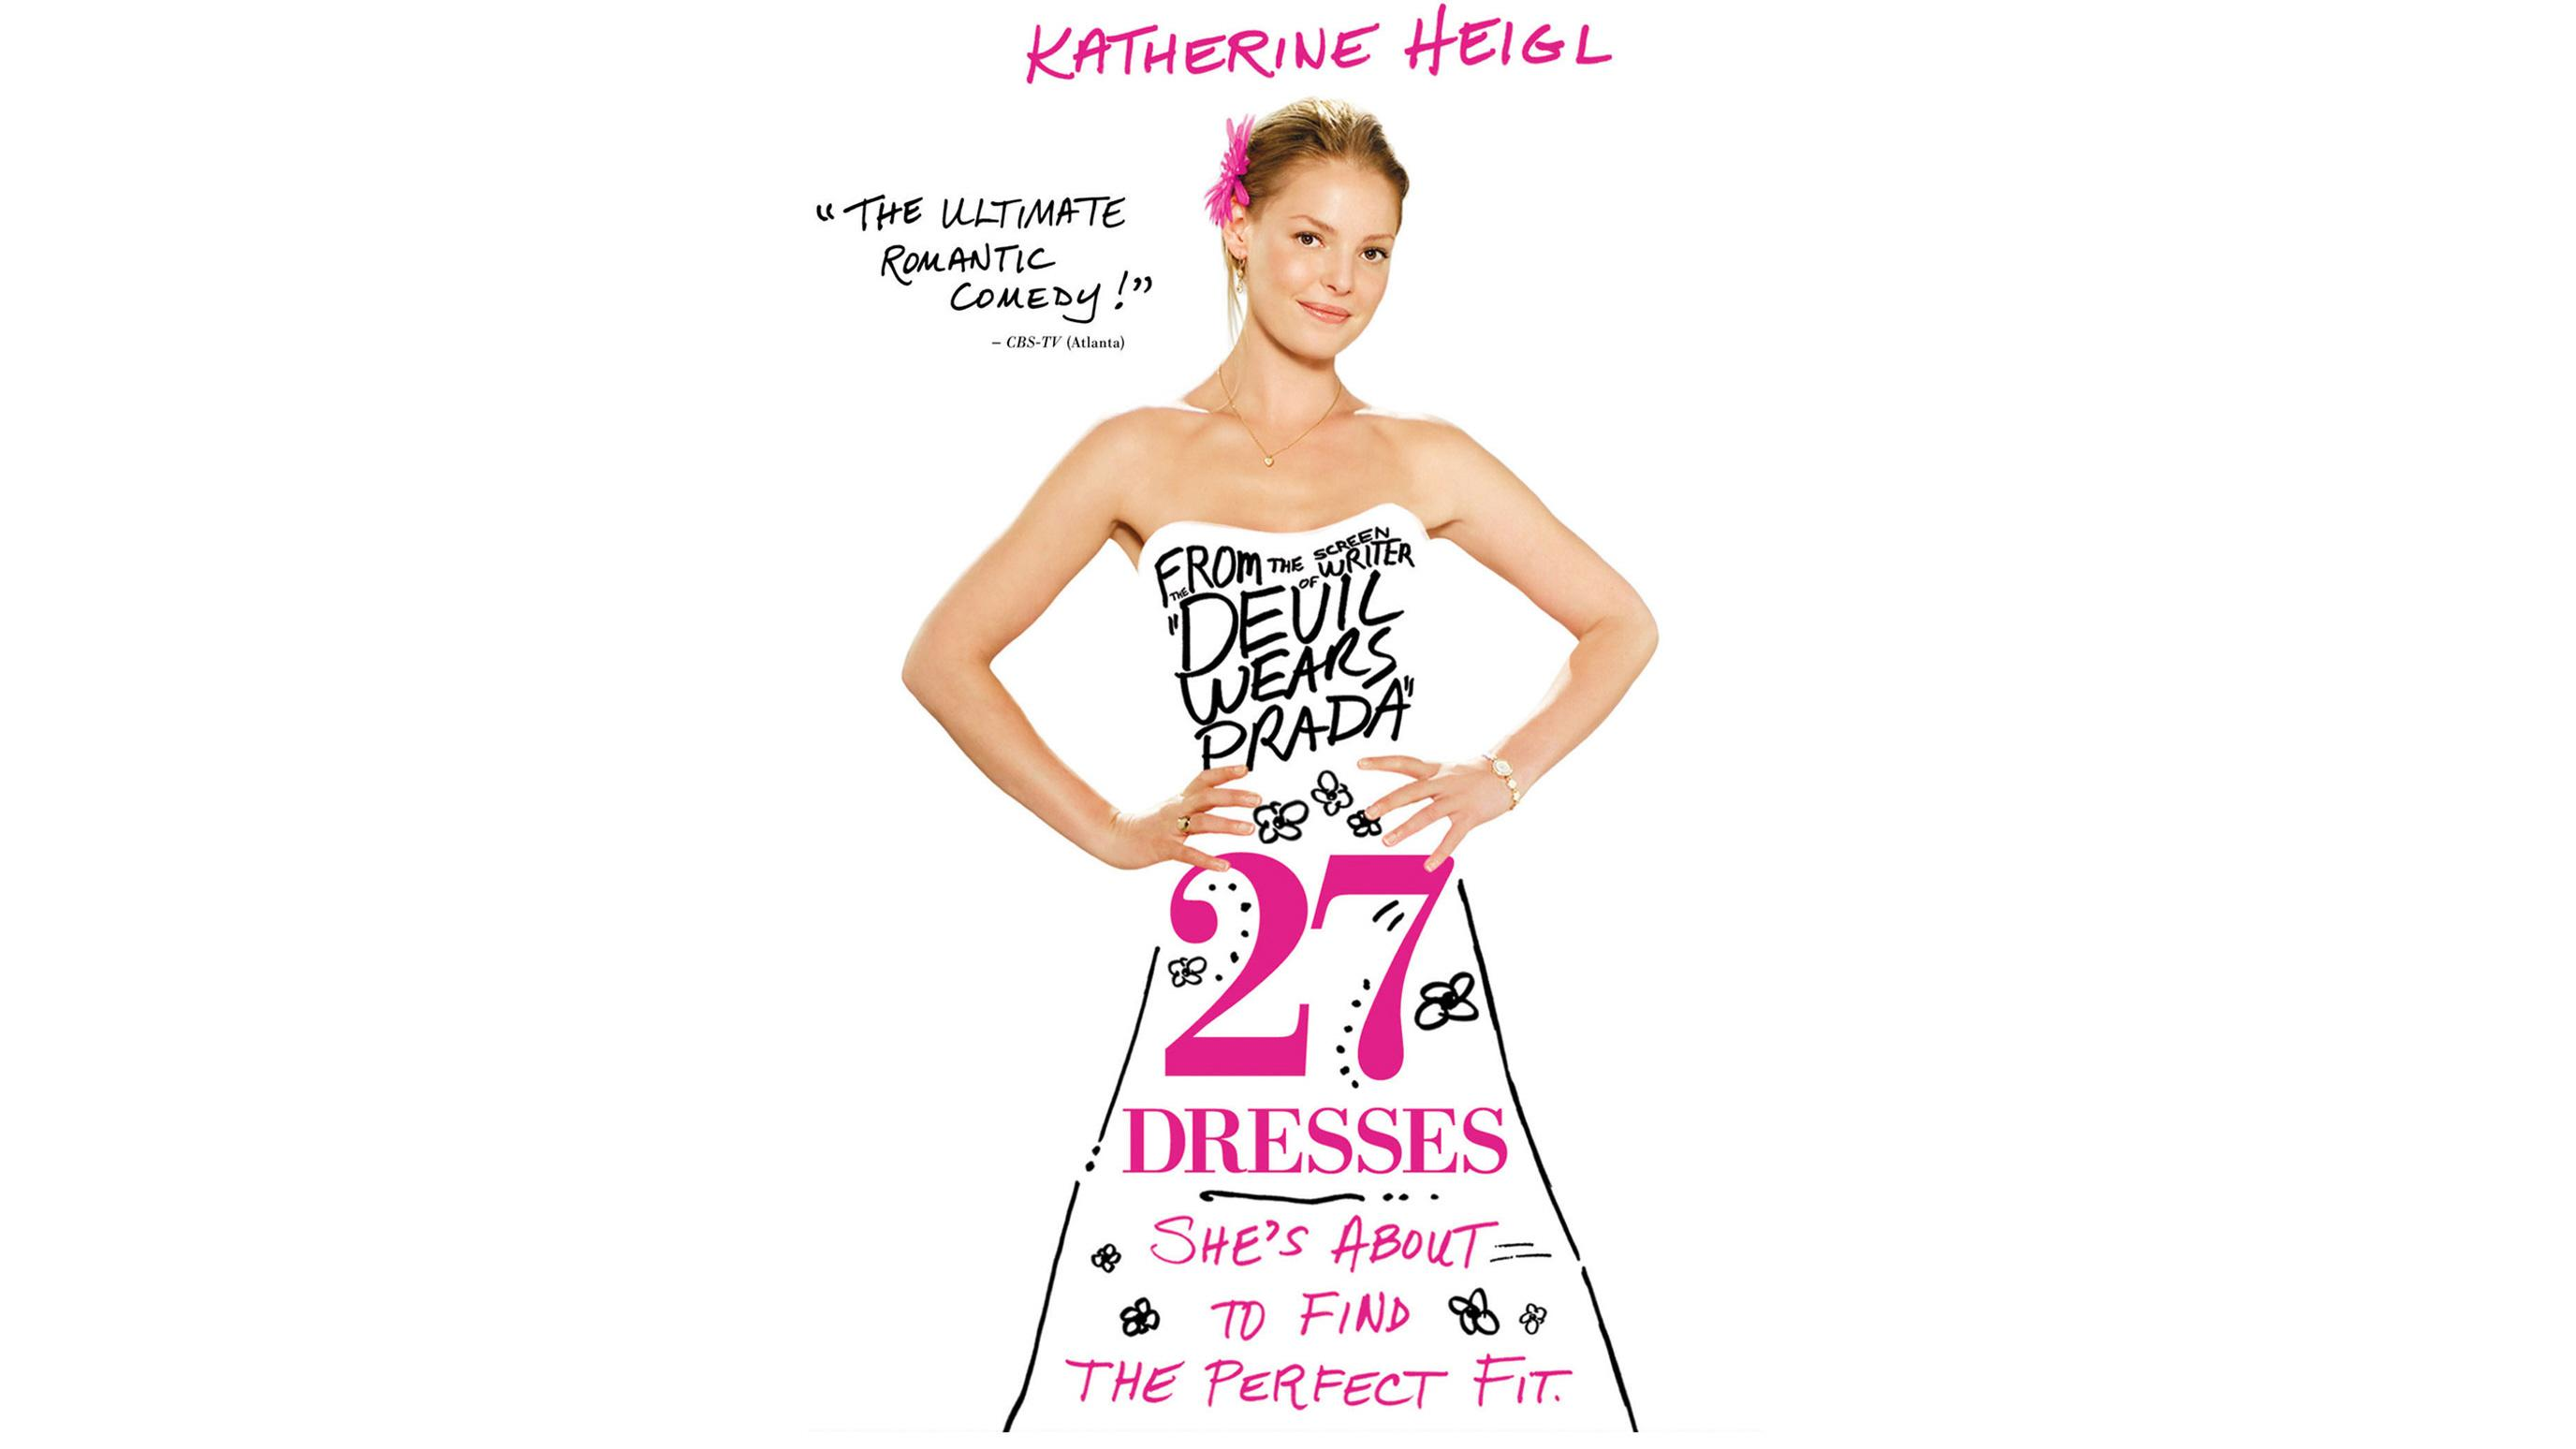 27 dresses full movie online free no download